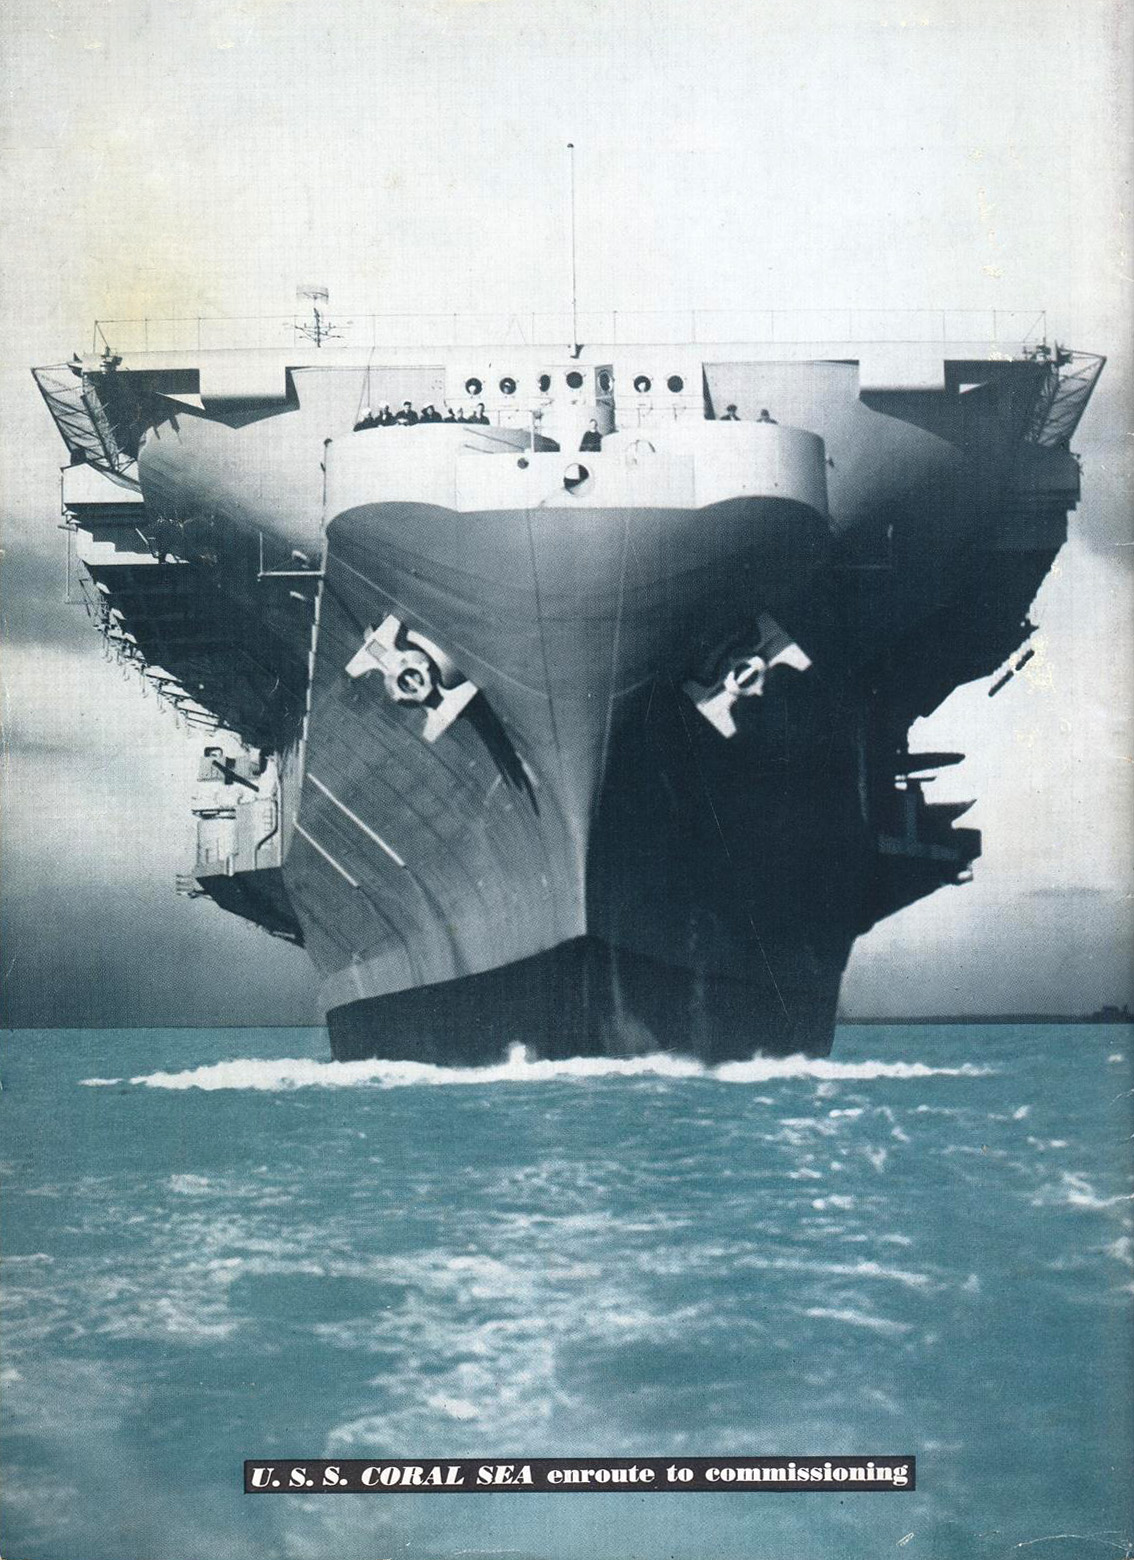 ' ' from the web at 'http://www.usscoralsea.net/images/comm194707.jpg'